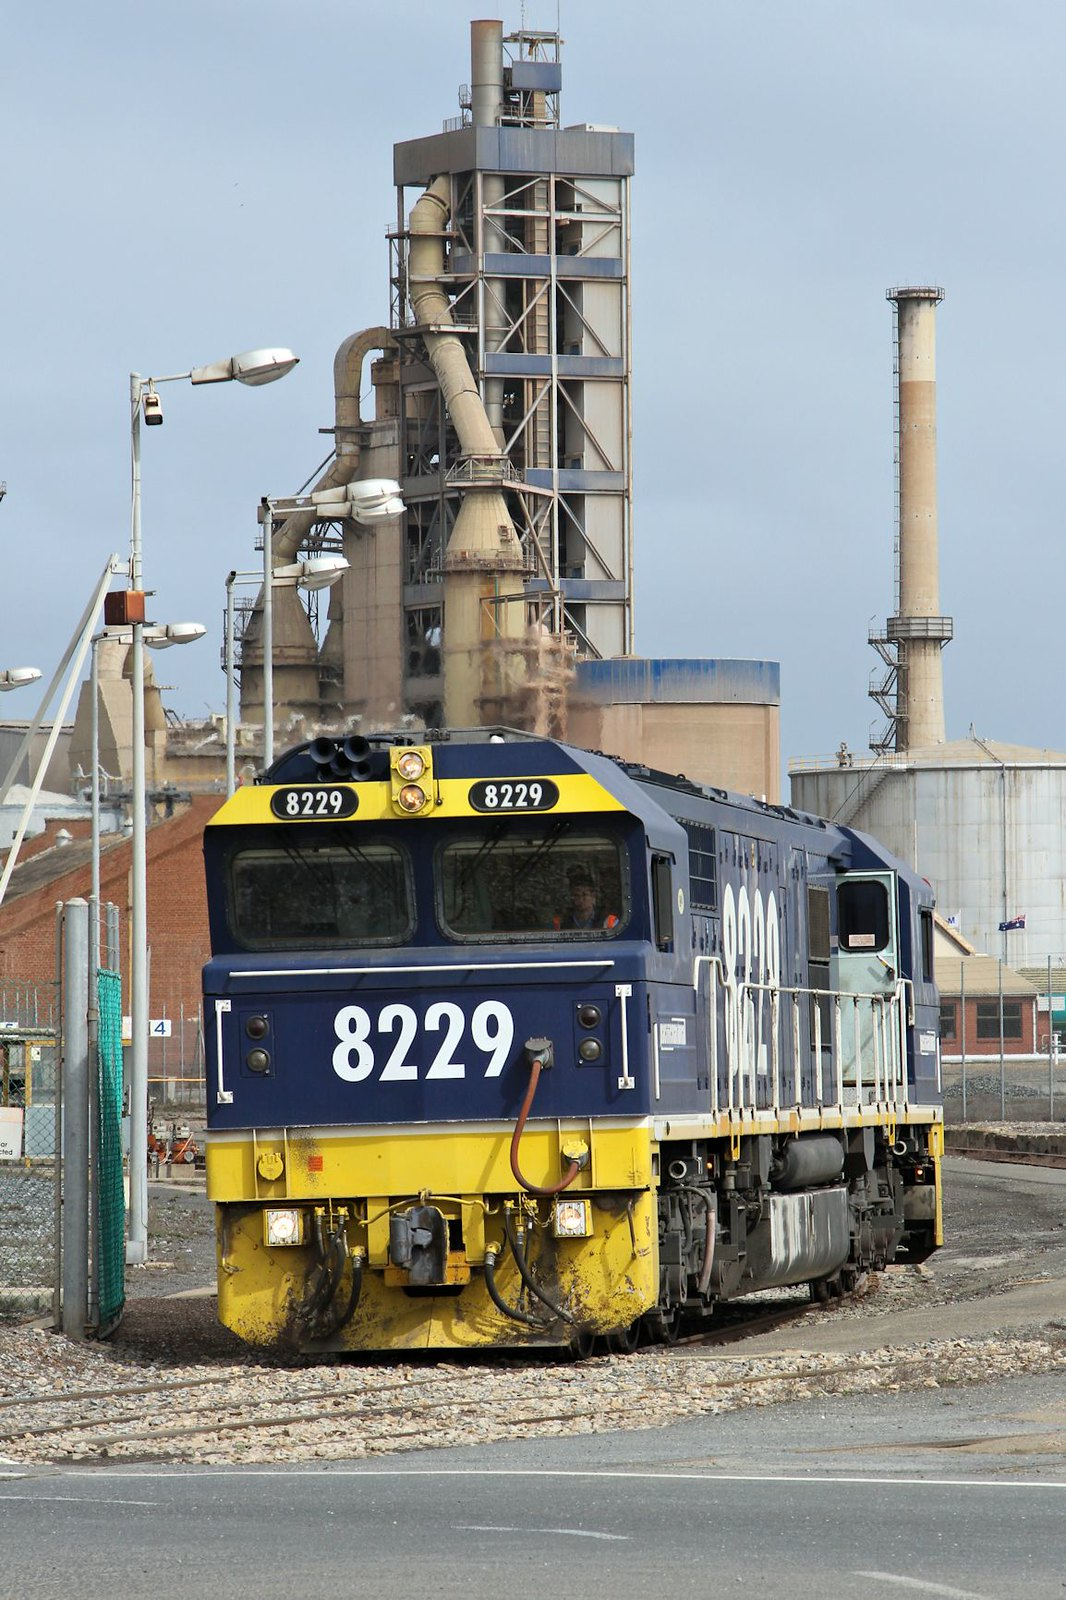 8229 1115s Mobil Shunt Birkenhead-A 10 09 2014 by Daven Walters